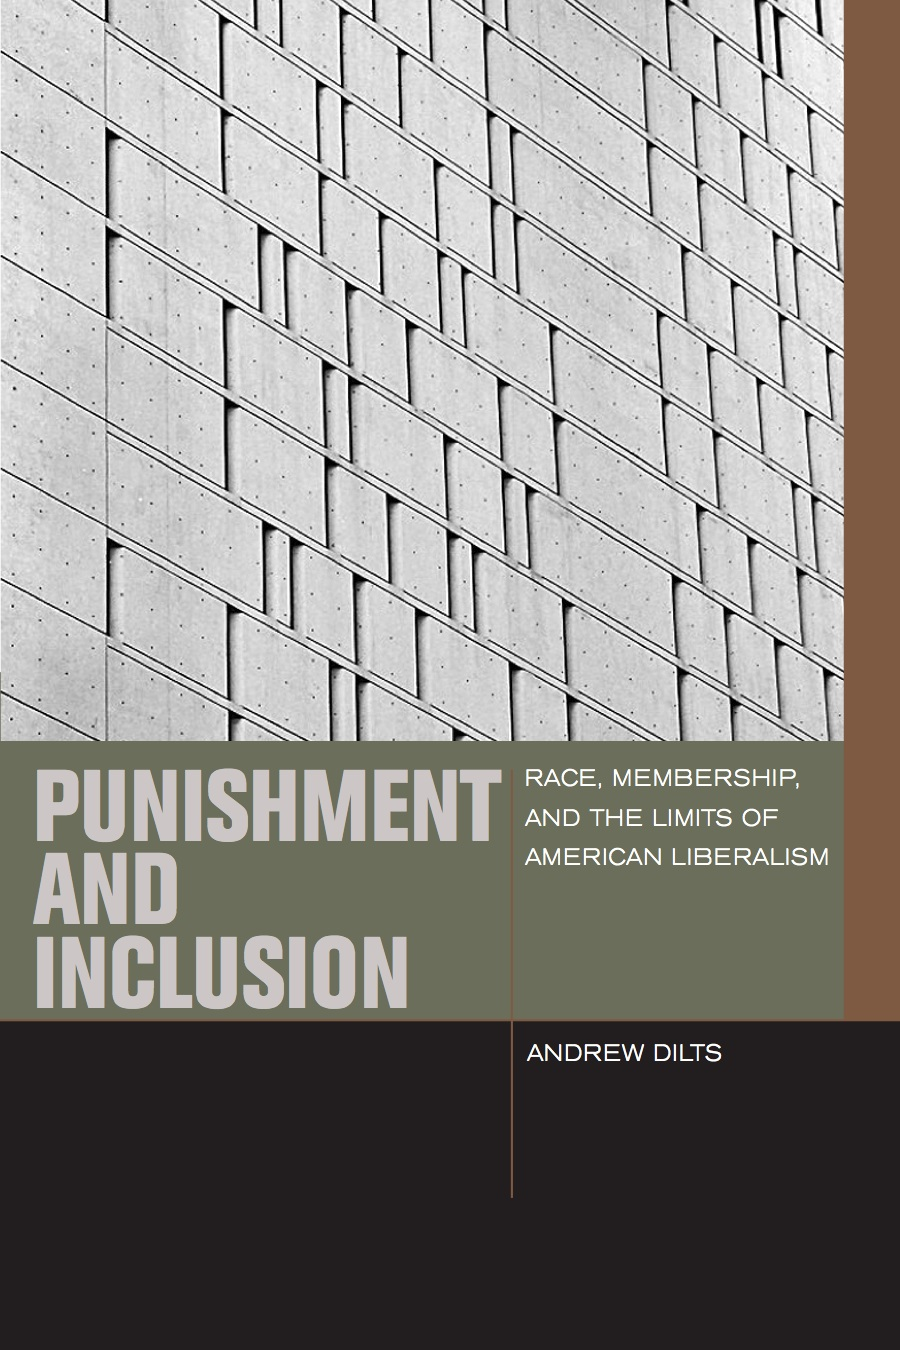 Punishment and Inclusion by Andrew Dilts